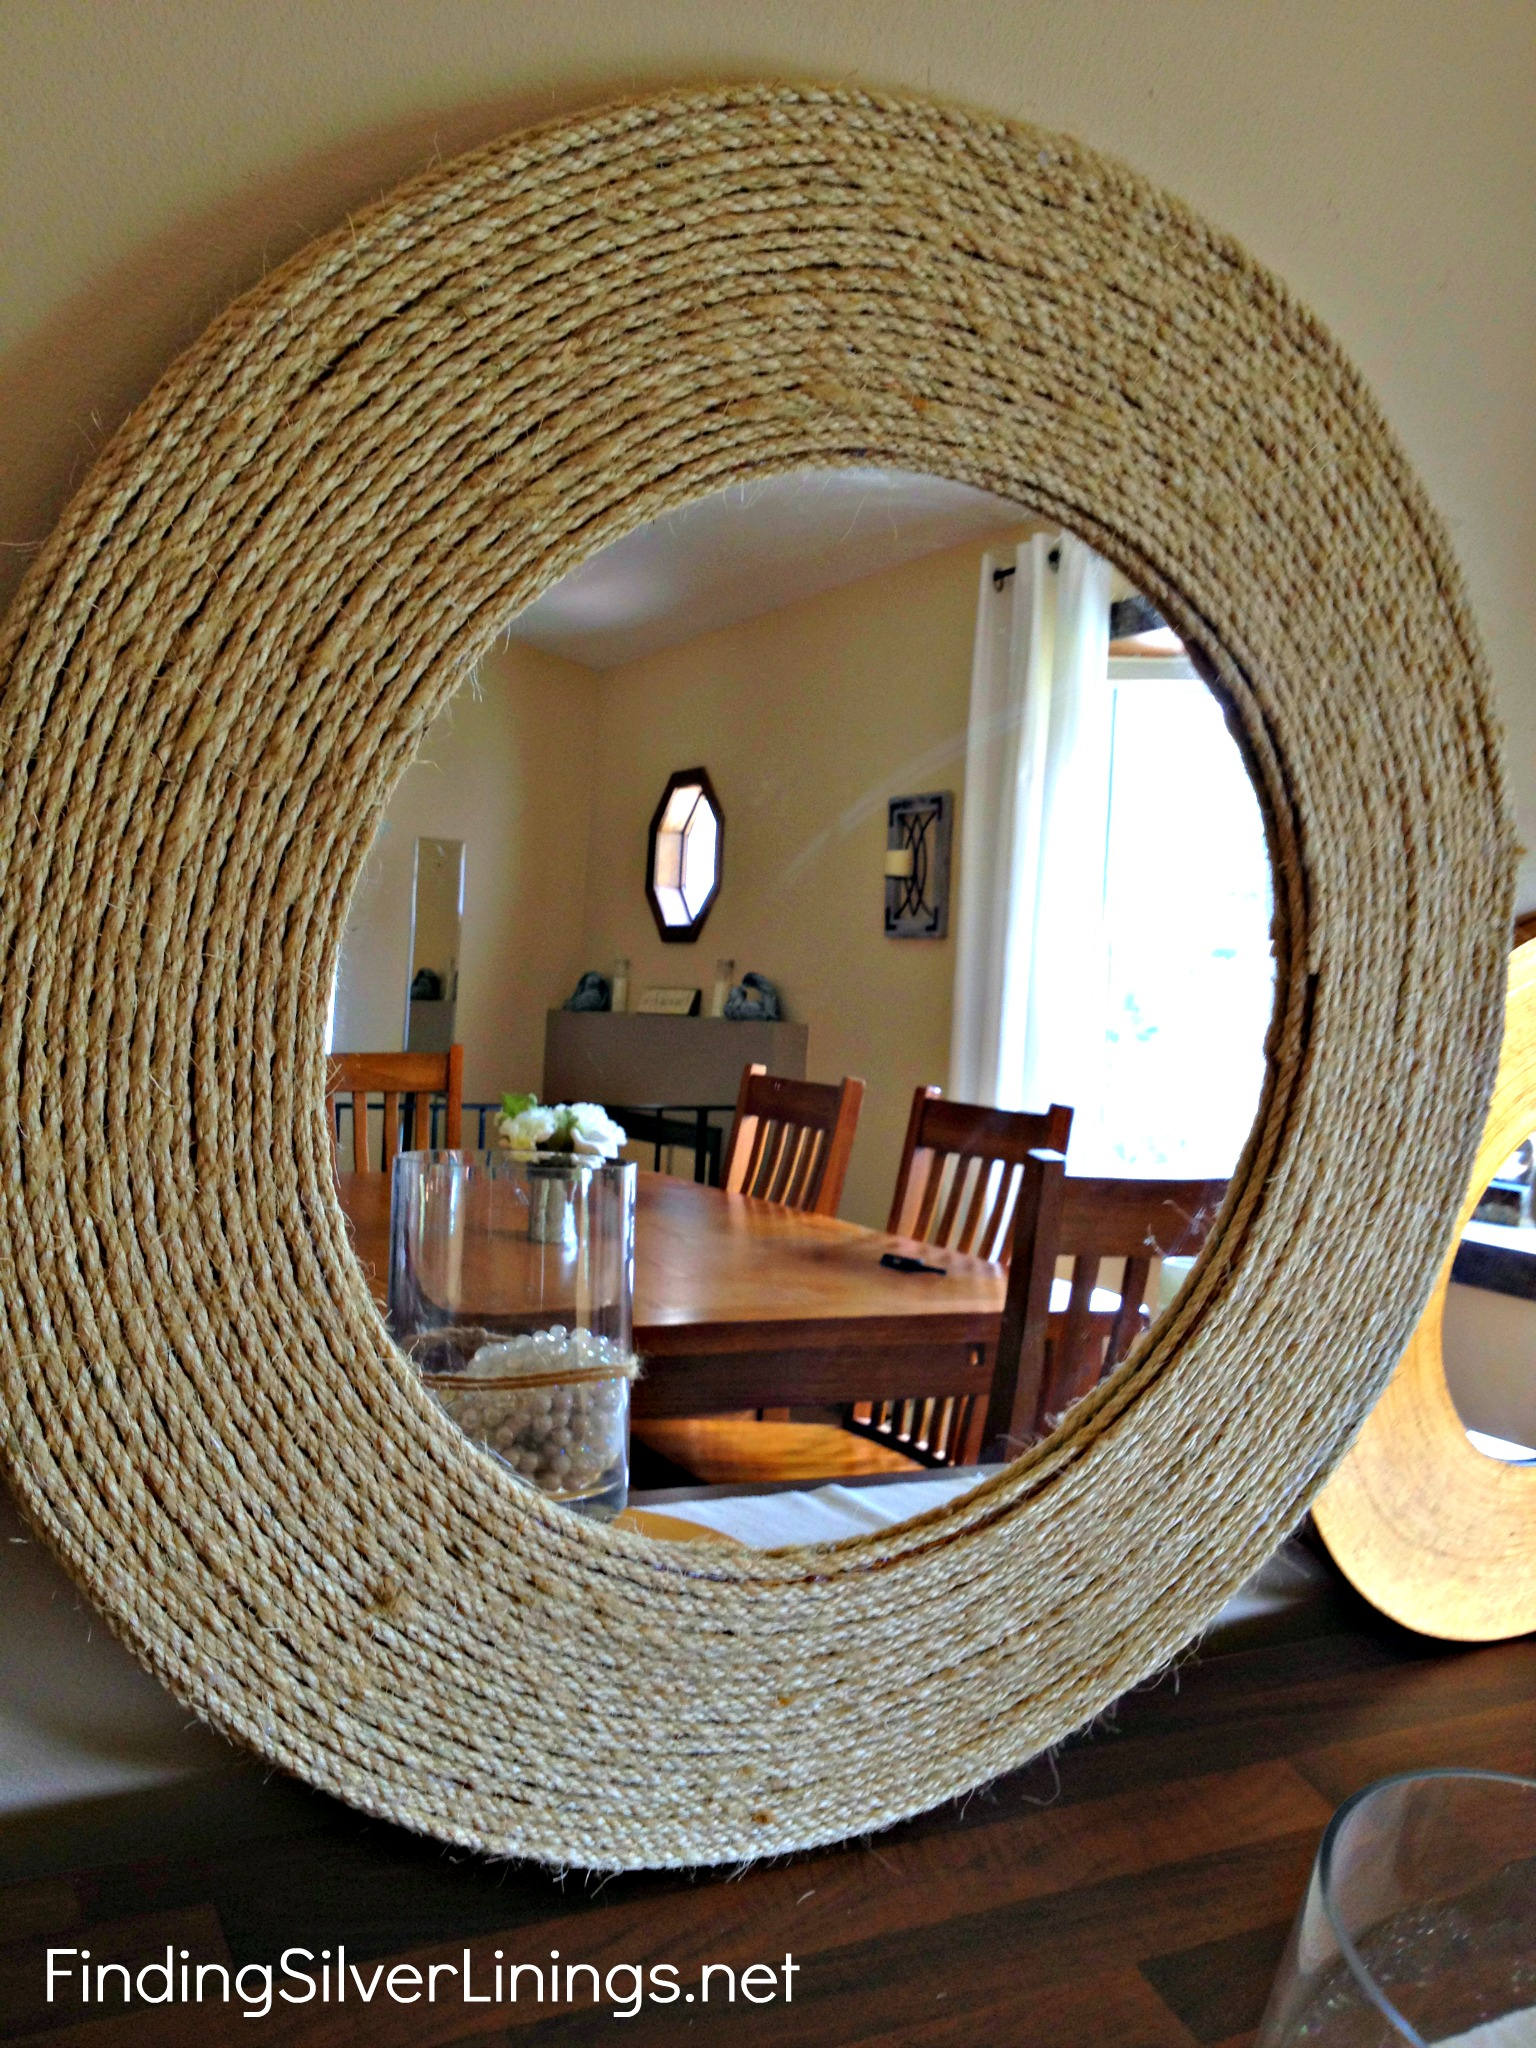 Completely new Pinterest Challenge: D-I-Y Rope Mirror | Finding Silver Linings UL36